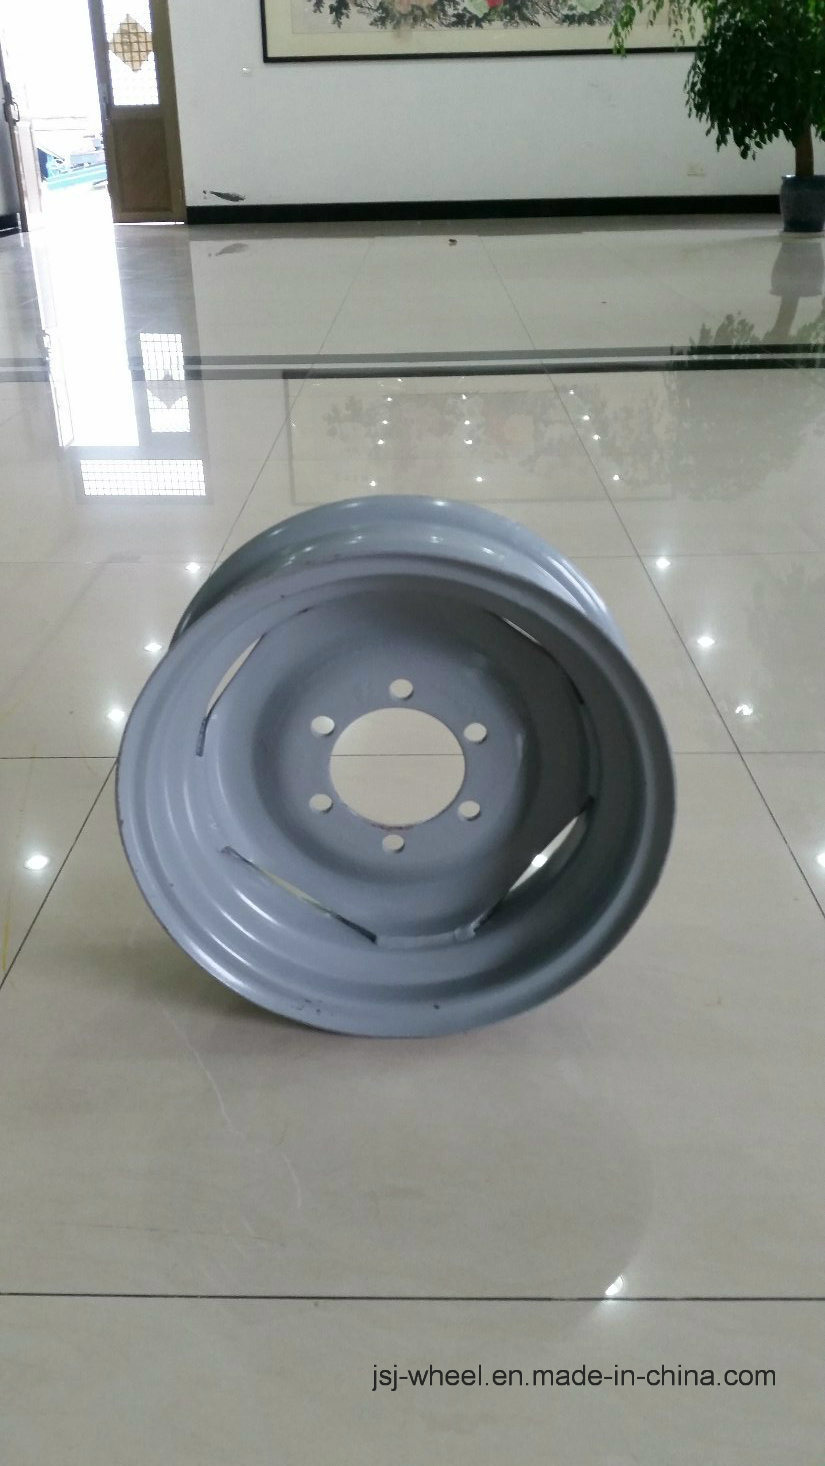 Wheel Rims for Tractor/Harvest/Machineshop Truck/Irrigation System-9